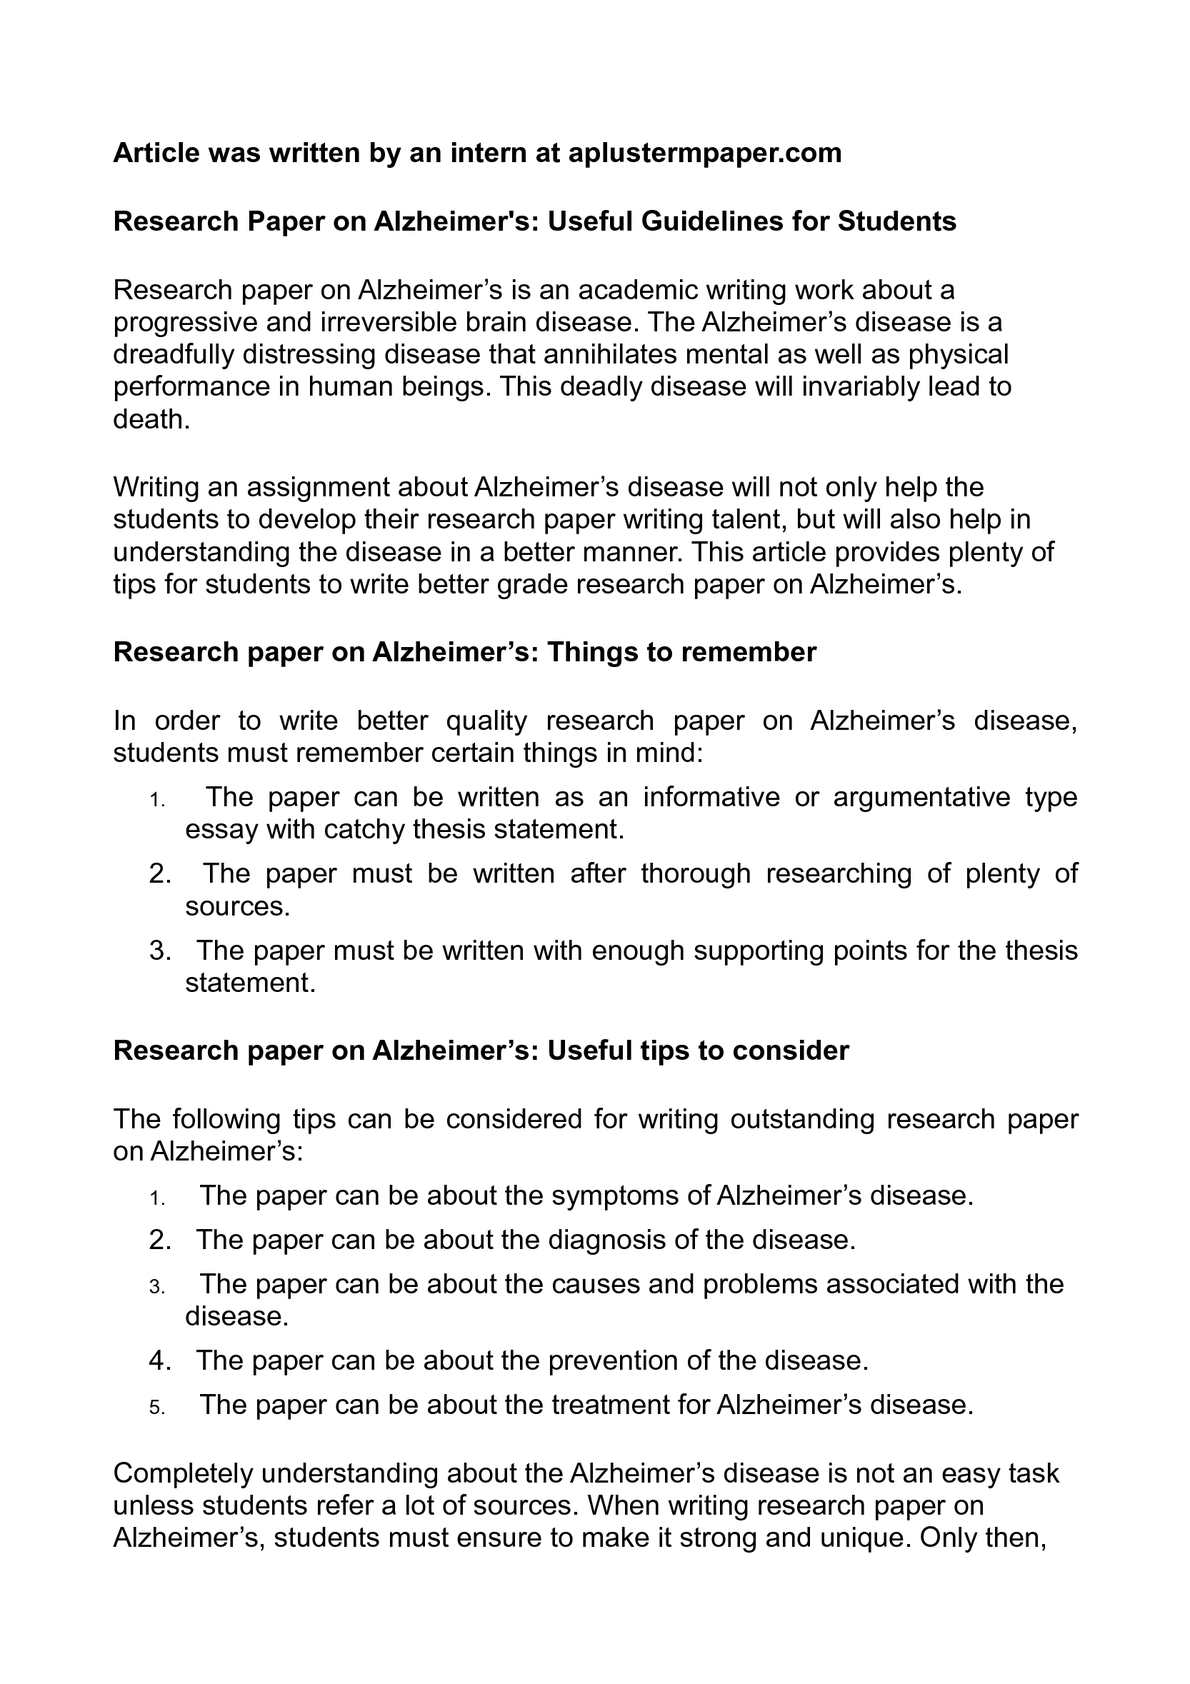 001 Research Paper Alzheimers Disease Outline Incredible Example For Alzheimer's Alzheimer Full